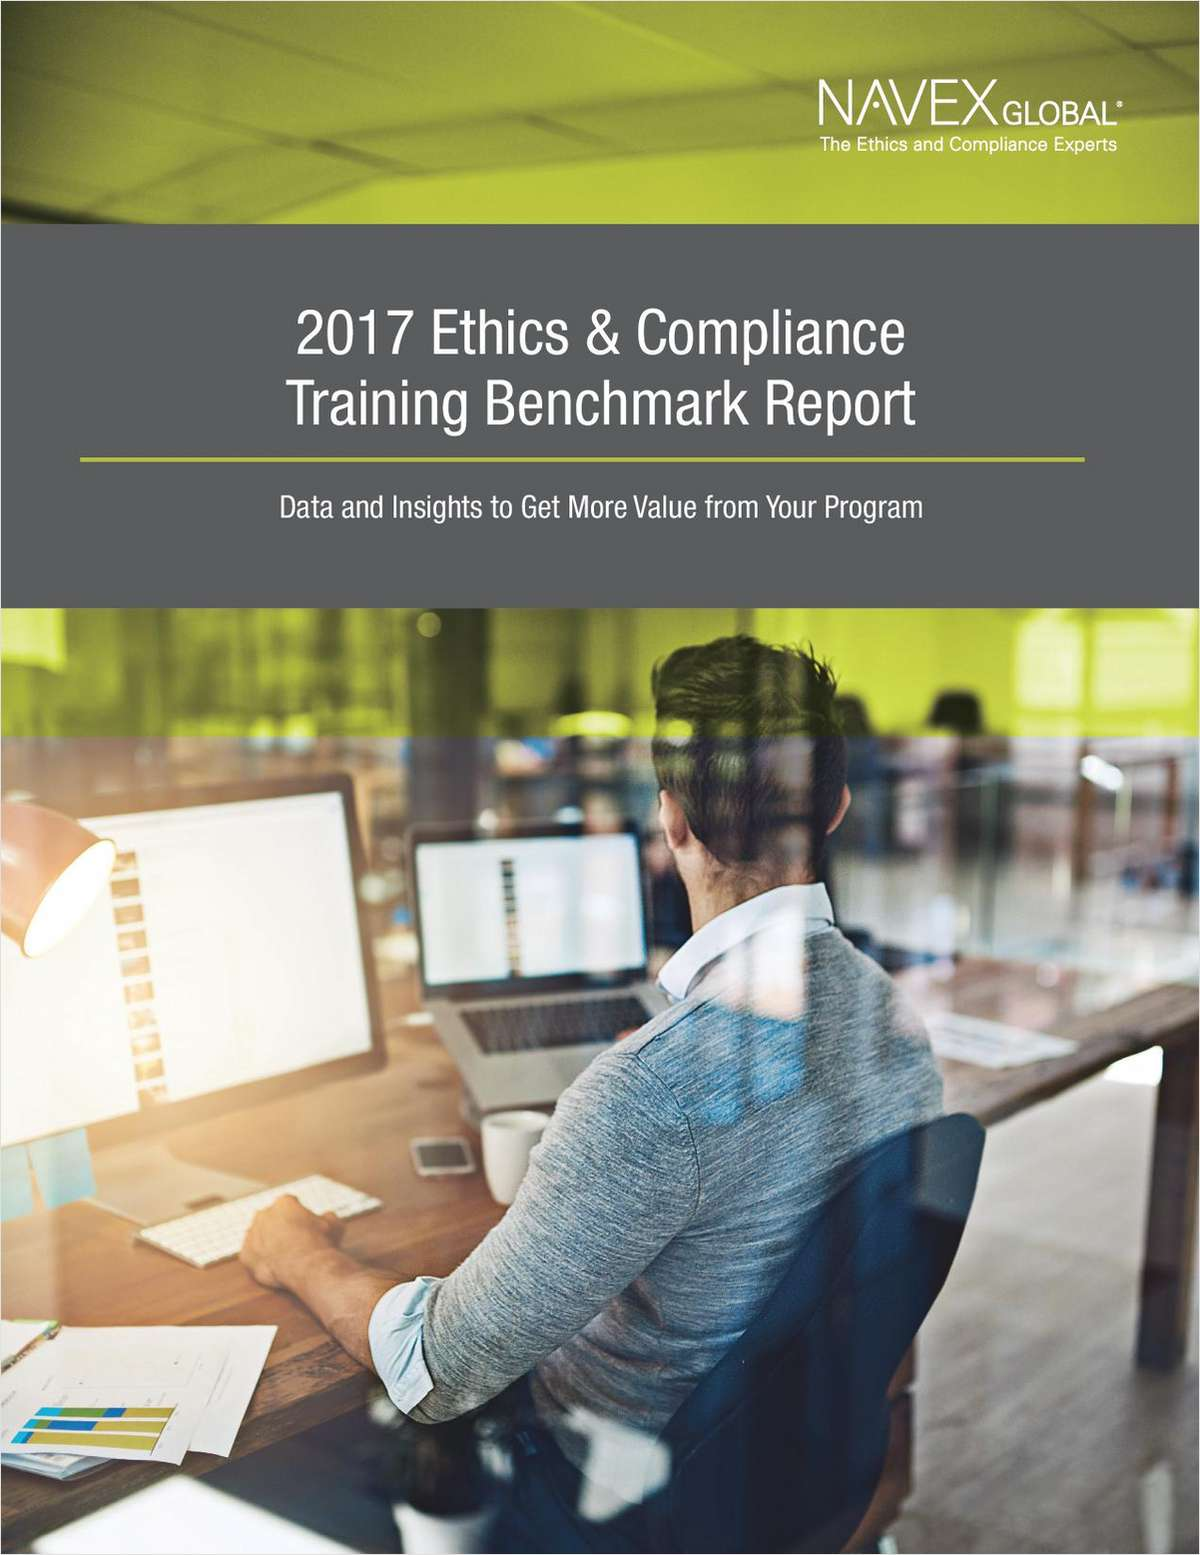 2017 Ethics & Compliance Training Benchmark Report